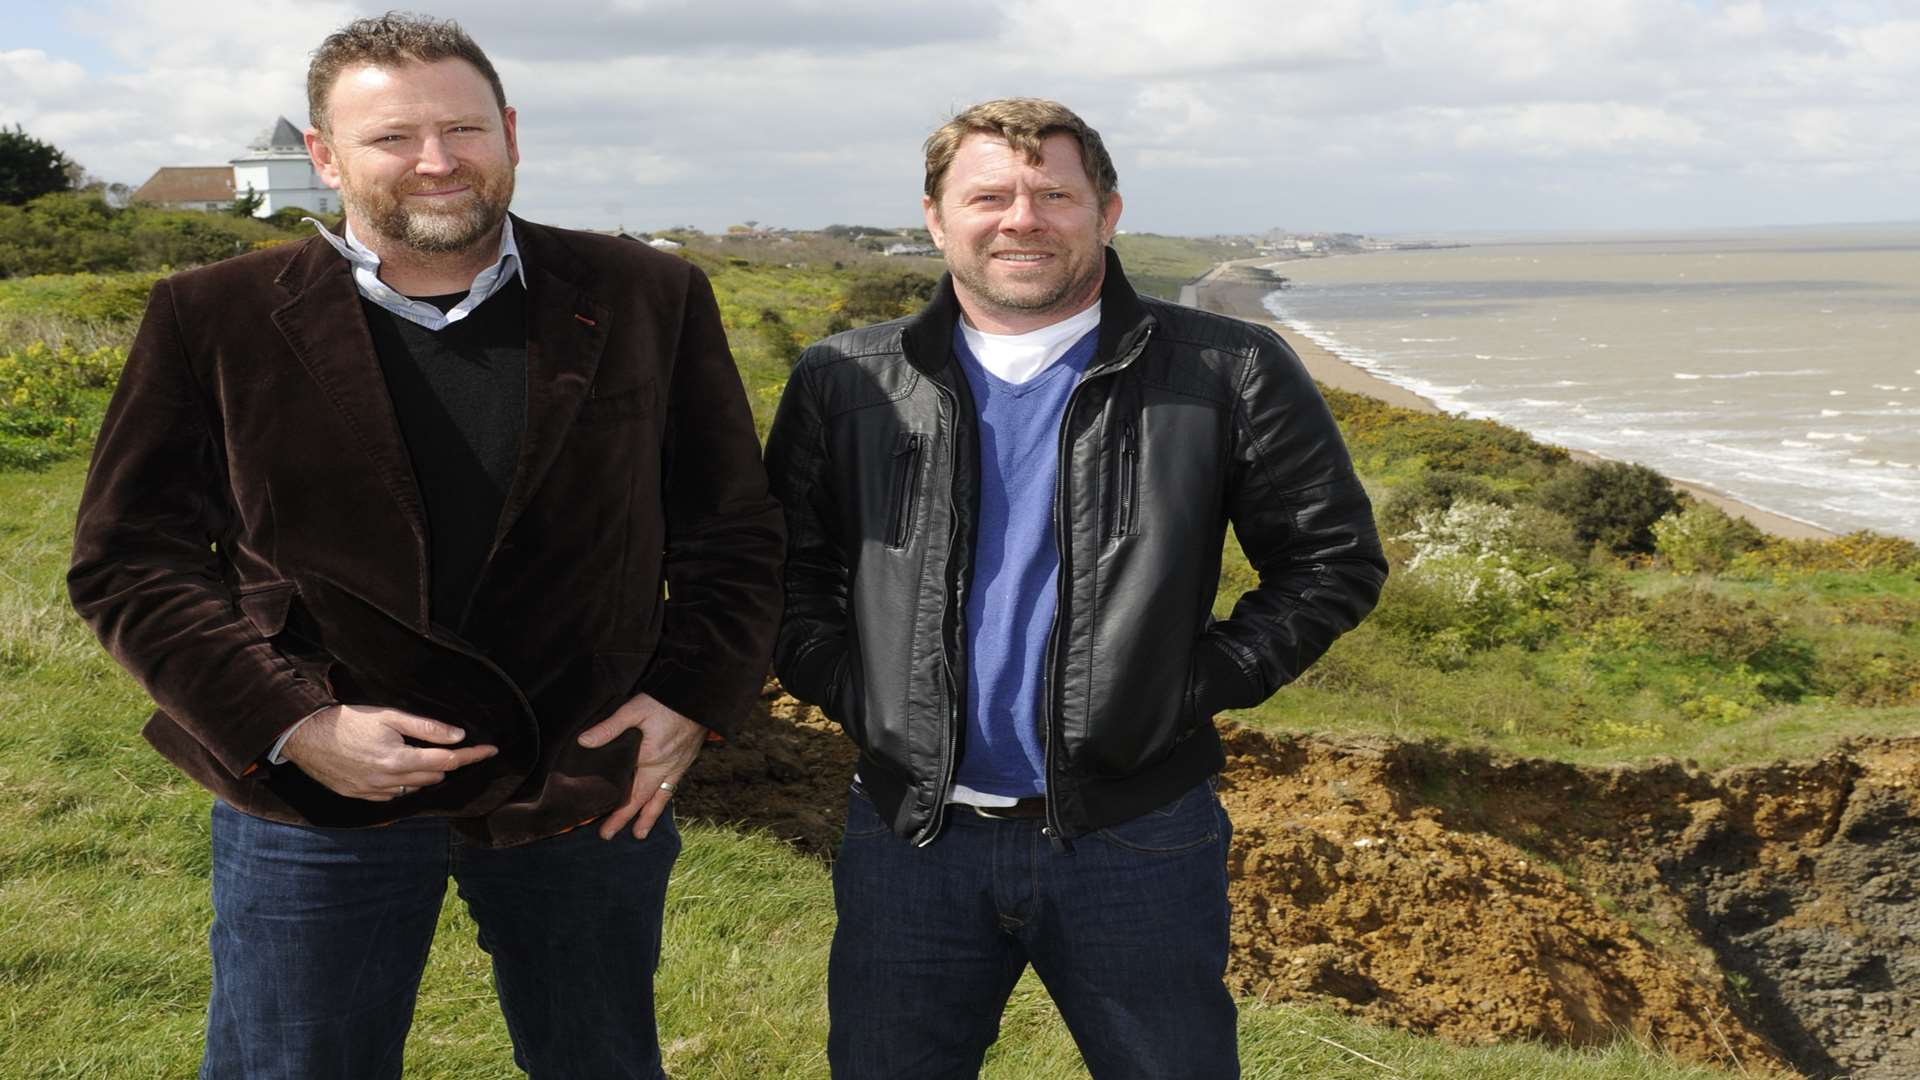 Jason Hollingsworth and Phillip Long want to put Kinetic sculptures along the seafront